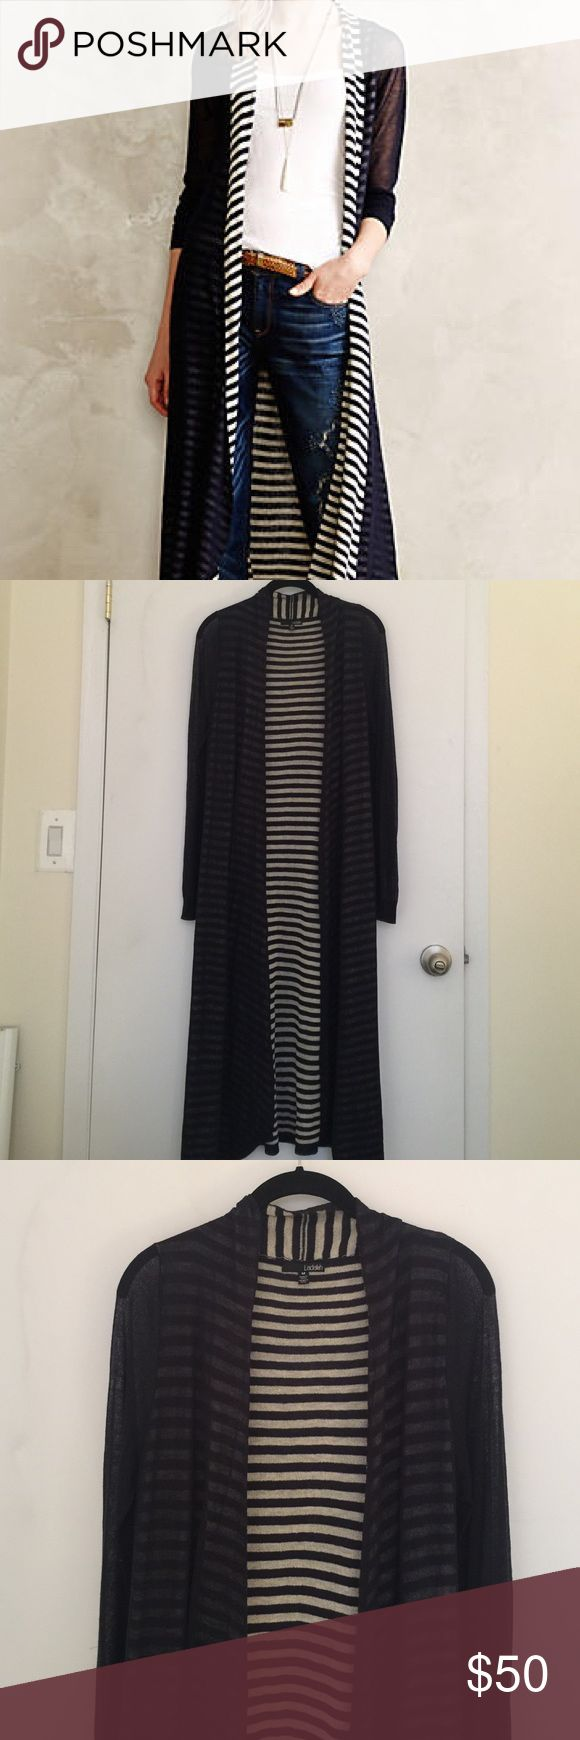 Anthropologie Eclipsed Stripe Duster This transitional cardi is a cut above your standard long sleeve layer. A hint of striped lining and an extended length make this piece a wardrobe go-to. Navy. Open front. Long sheer sleeves. Excellent brand new condition, never worn. No pulls pills or stains. By Anthro brand Ladakh. Anthropologie Sweaters